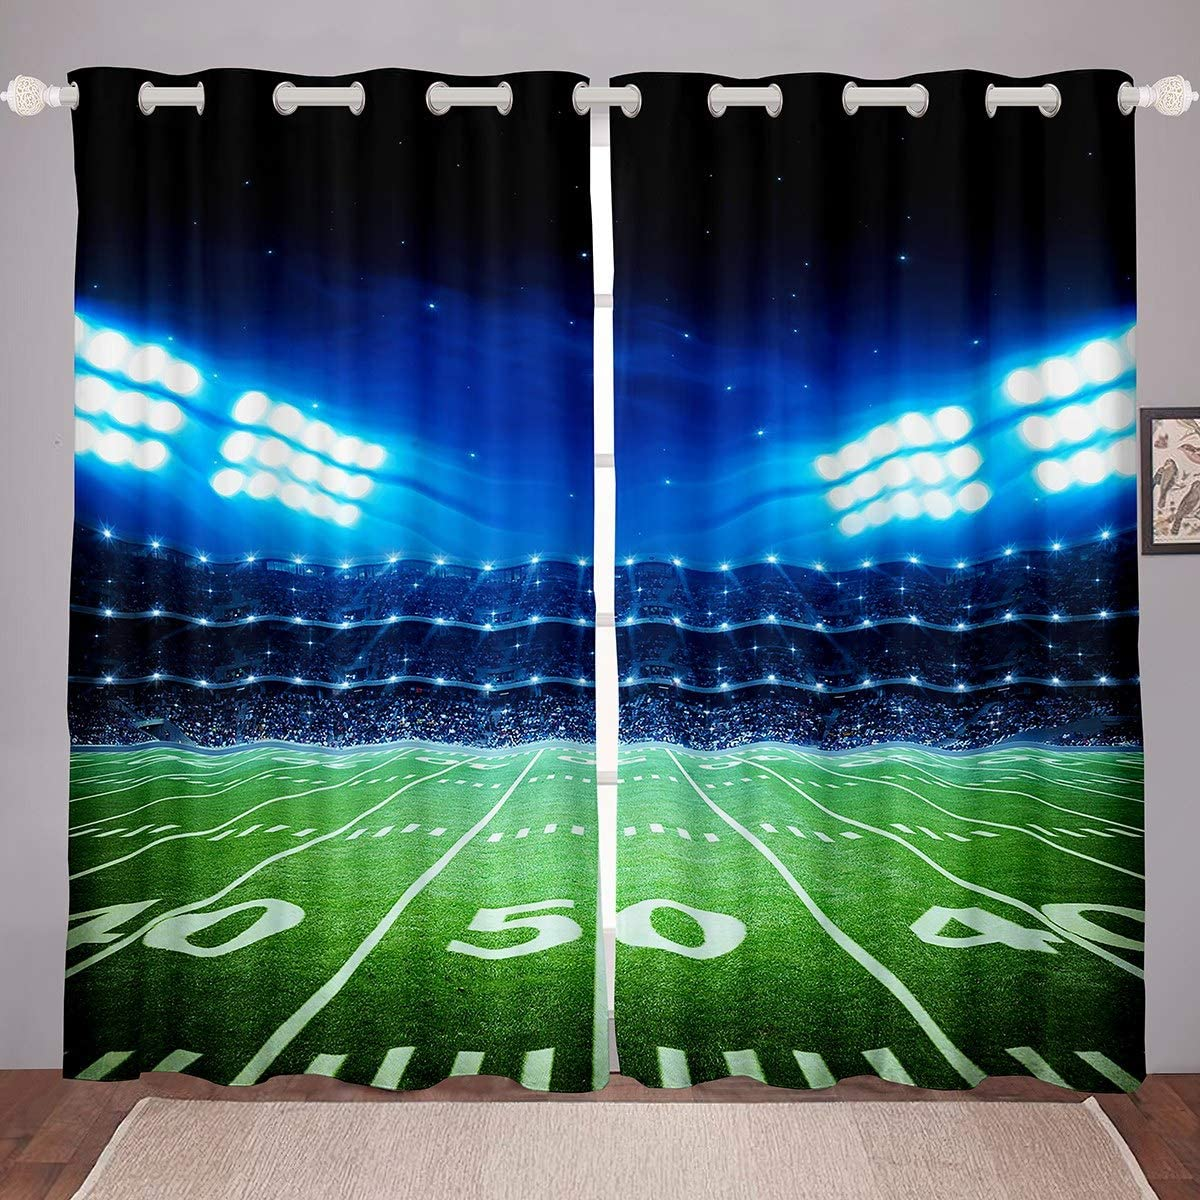 Football Room Darkening Curtain Boys Sports Blackout Curtain for Bedroom for Kids Youth 3D Rugby Field Printed Thermal Curtain Rugby Game Blackout Drapes,42 X 63 Inch,2 Panels